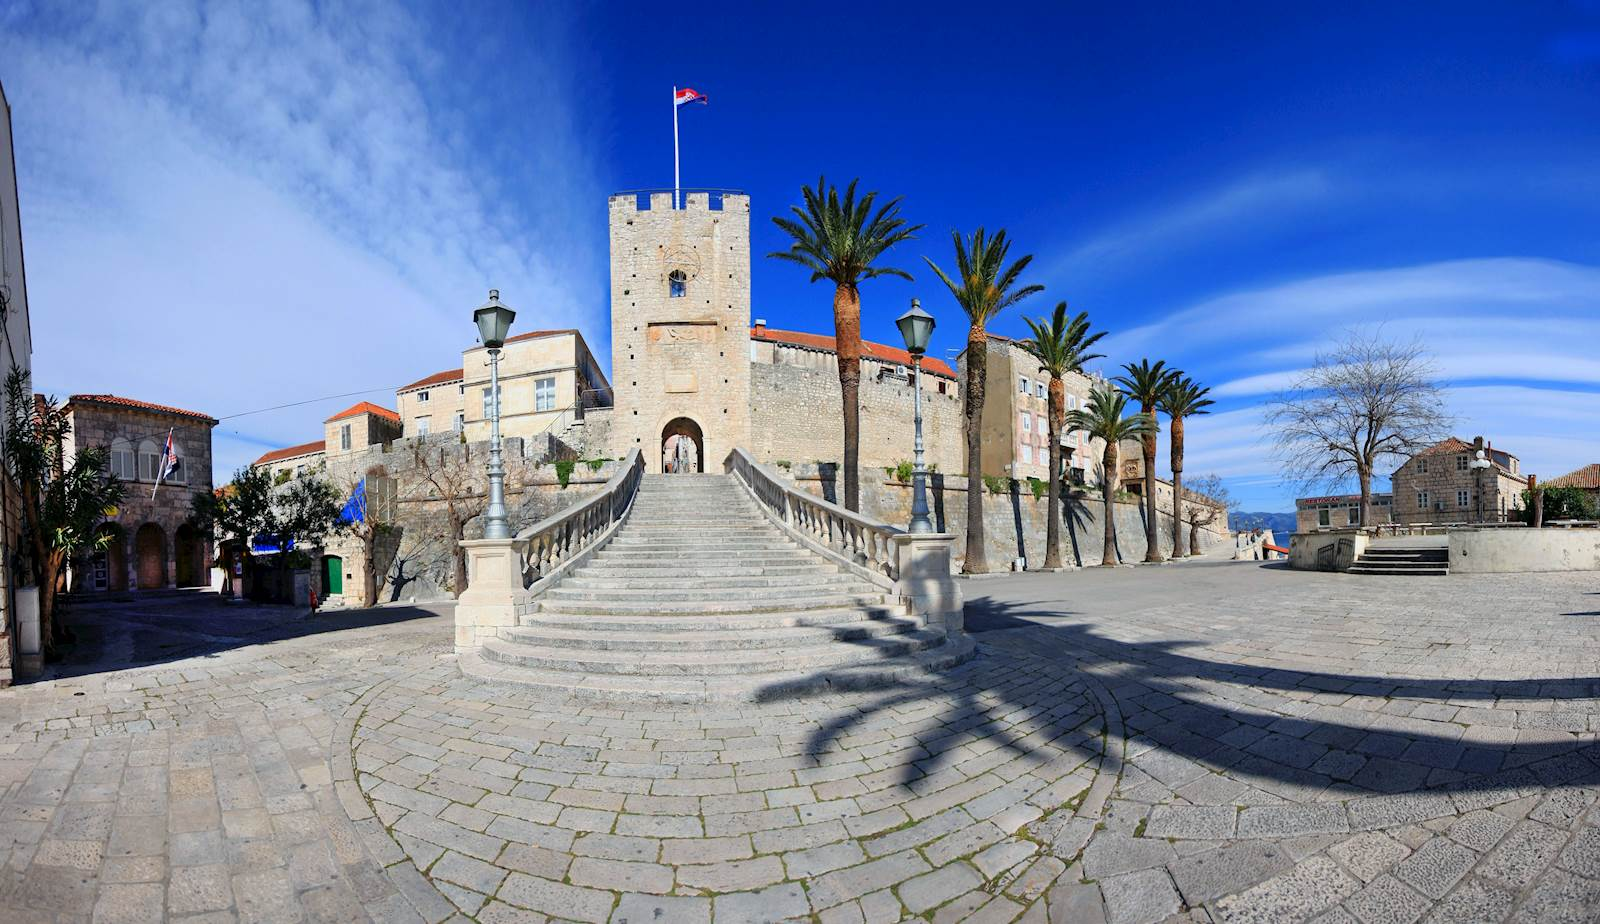 -images-excursions-town-of-marco-polo--b-korcula-revelin.jpg